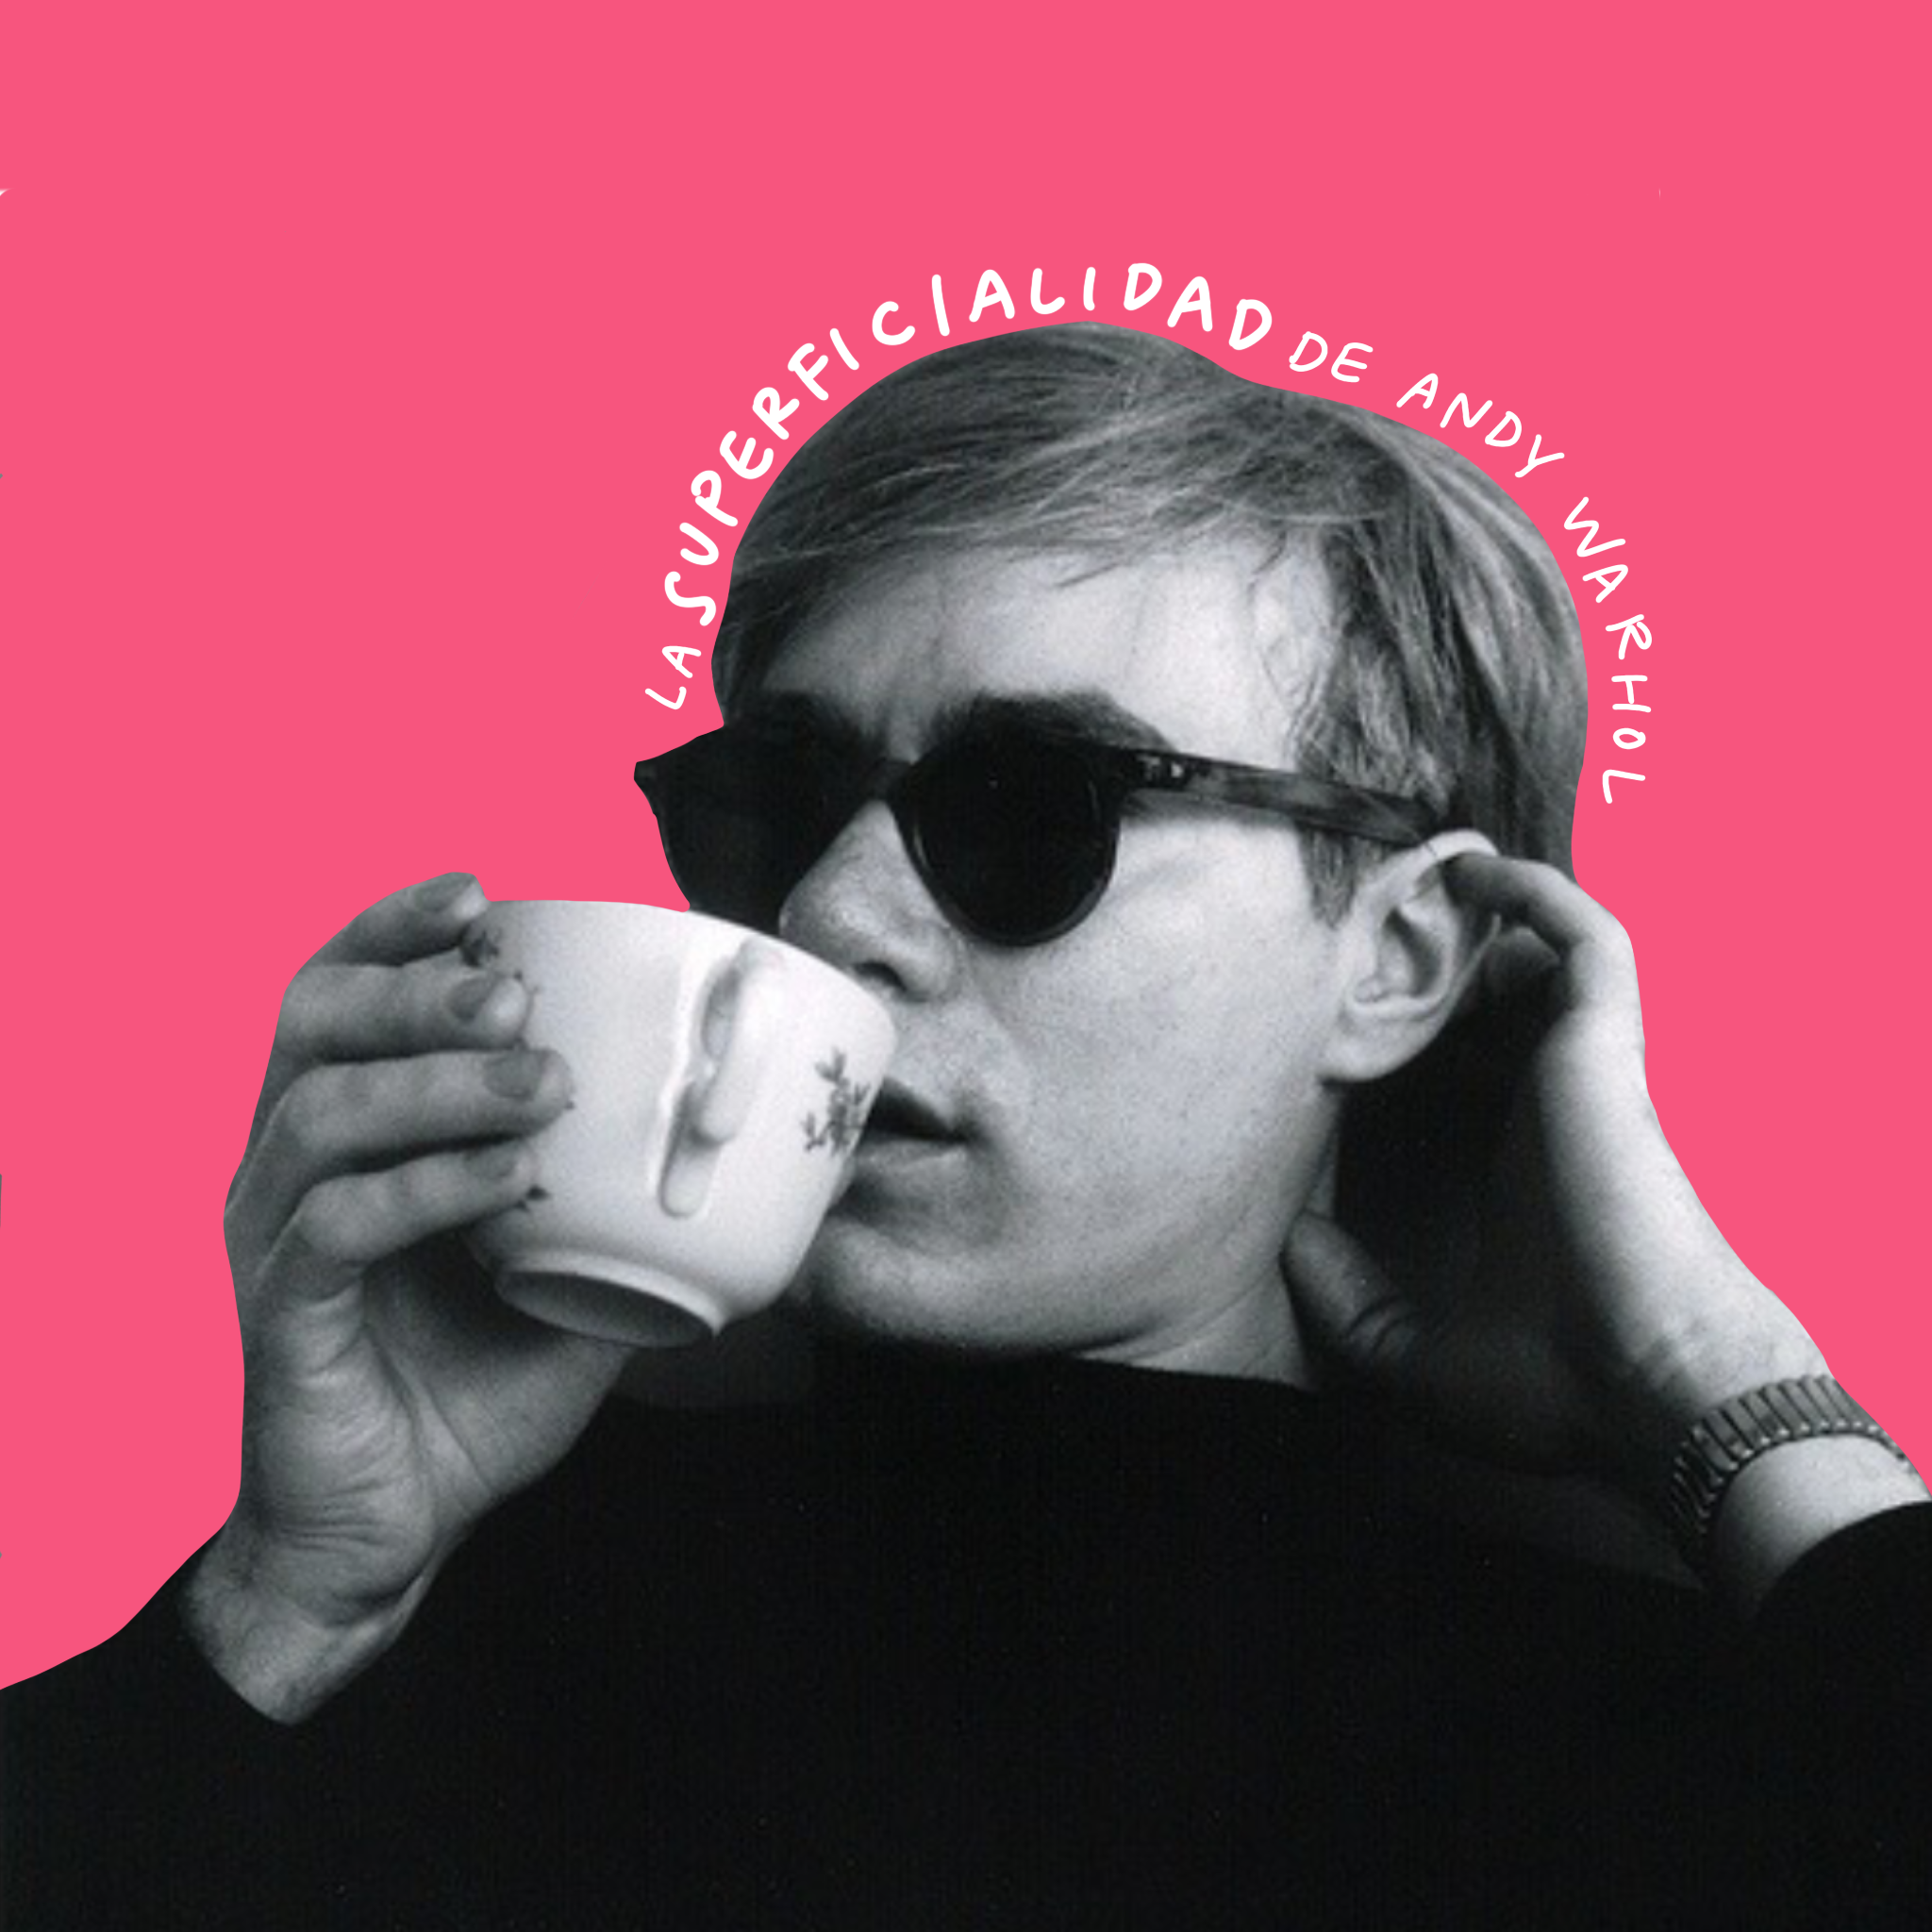 Andy Warhol sipping tea